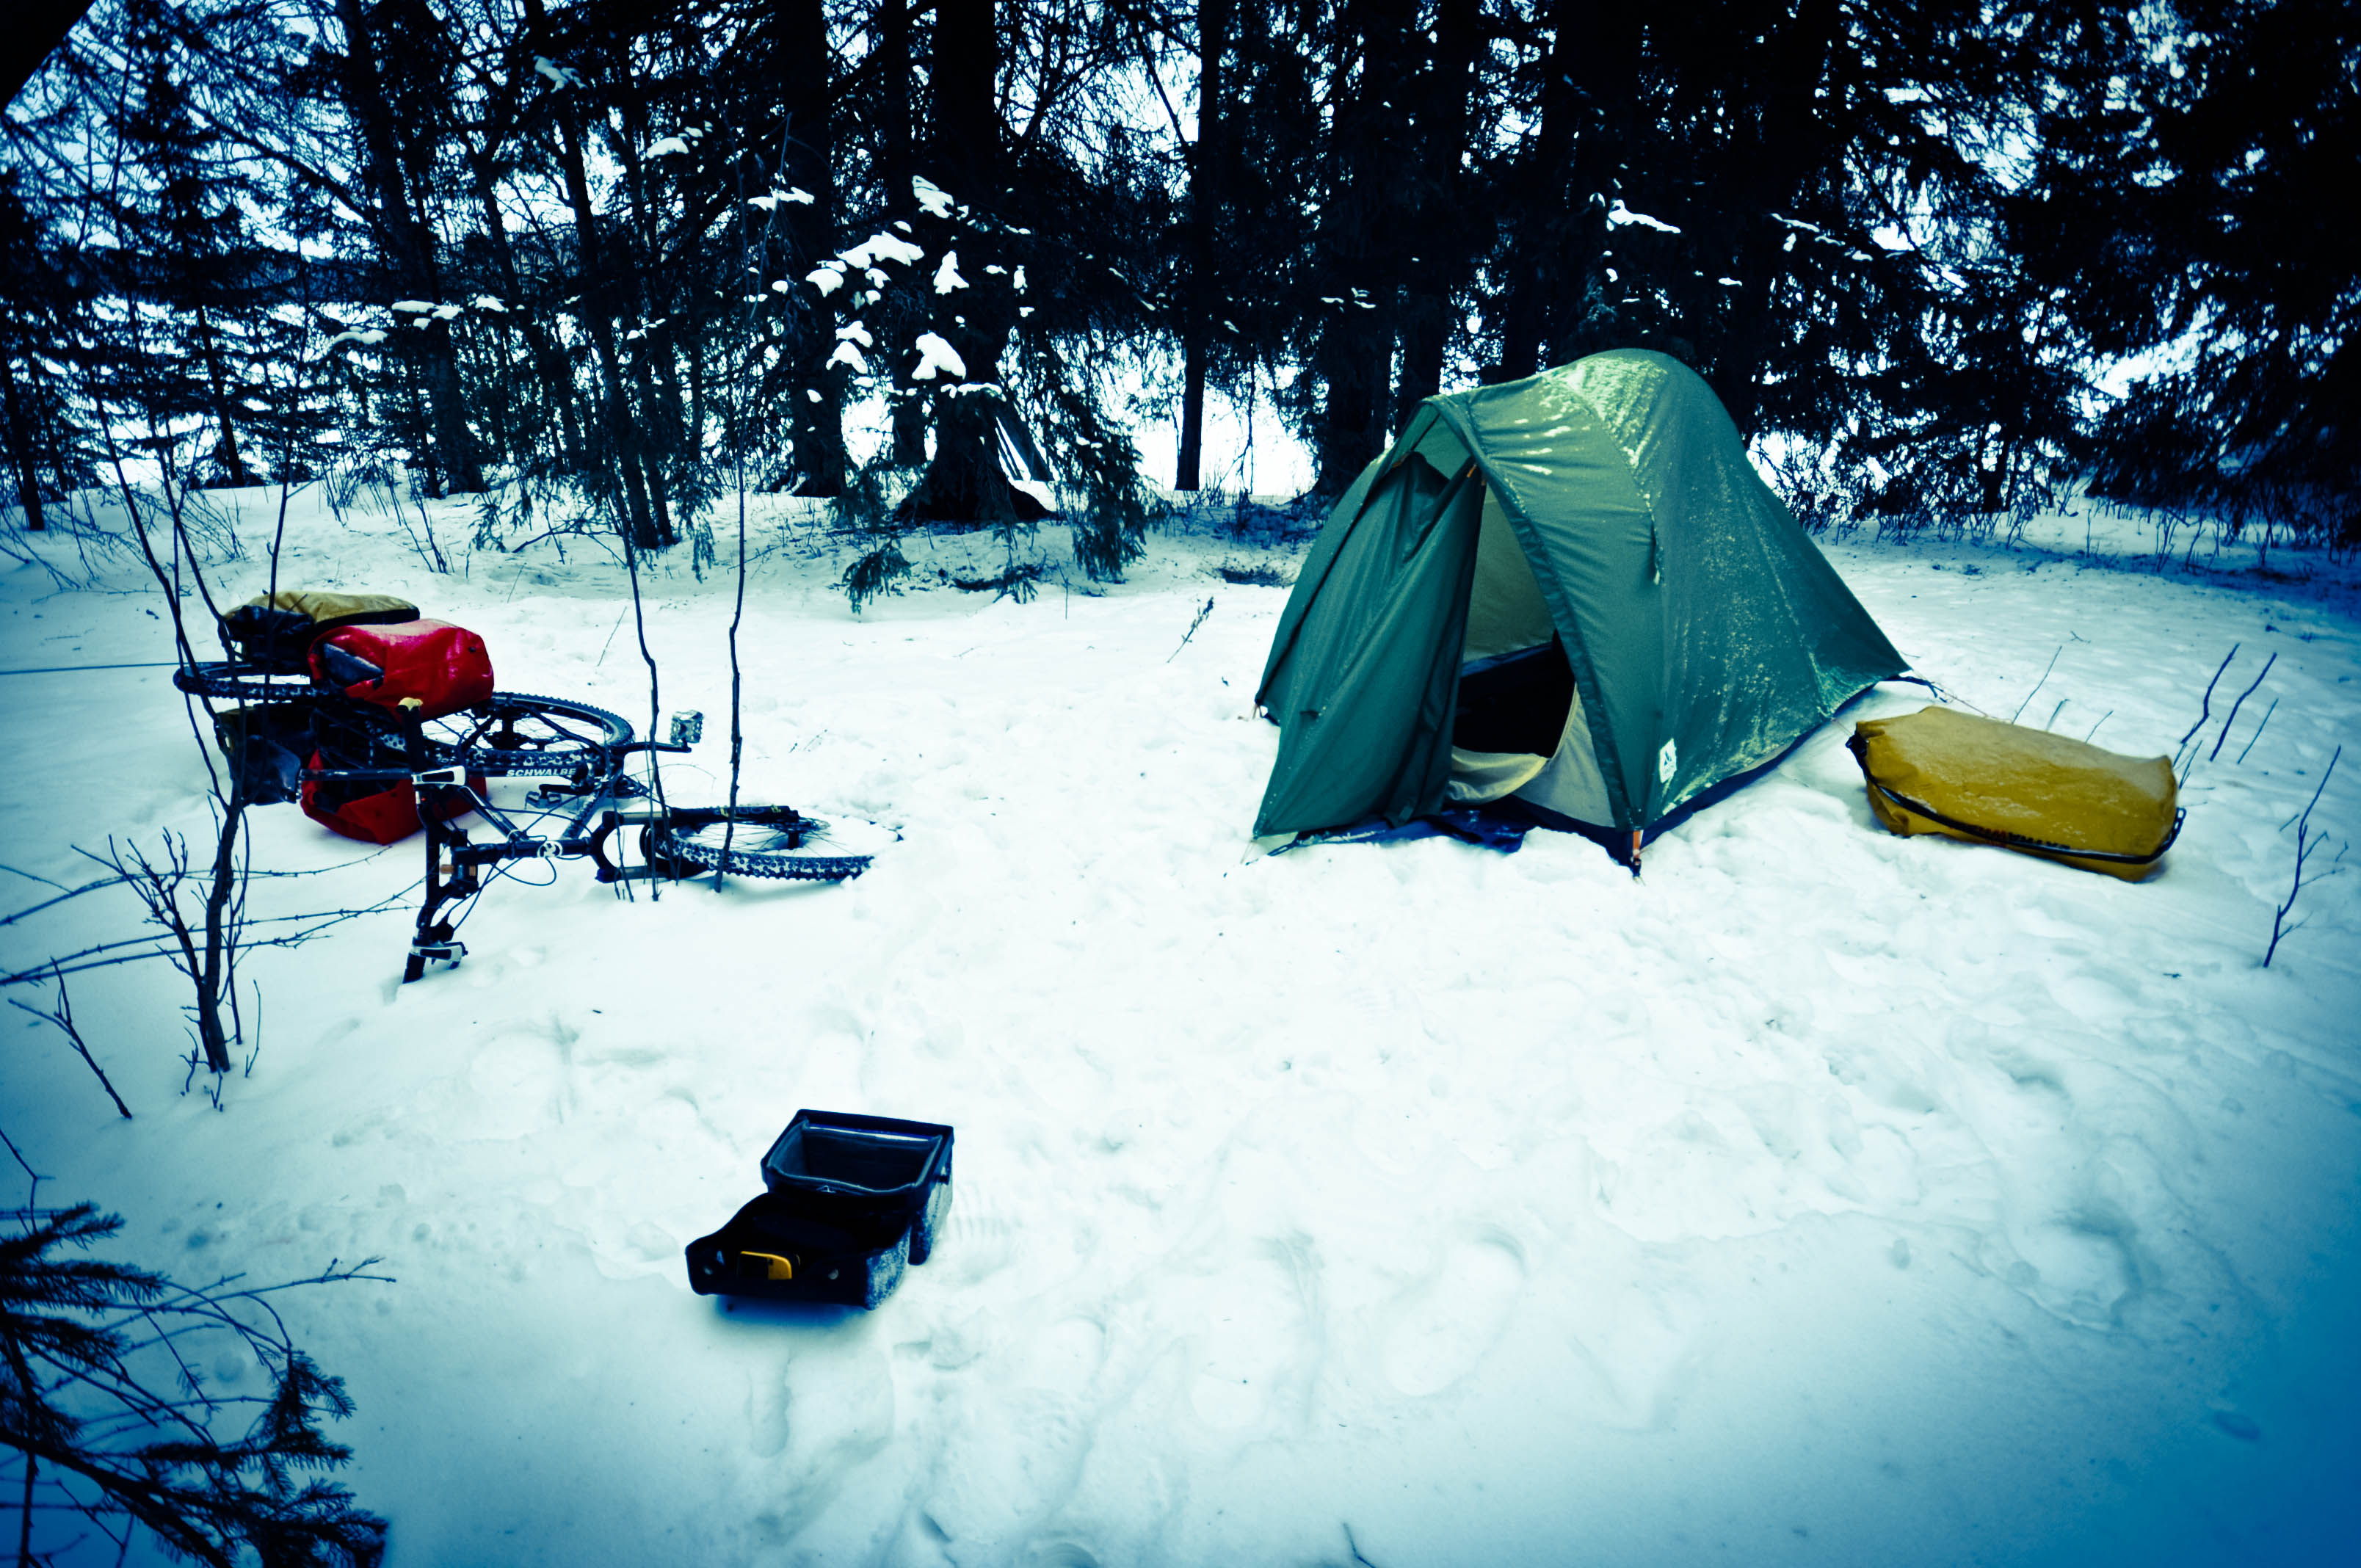 & 8 Simple Tricks To Stay Warmer When Camping In Winter